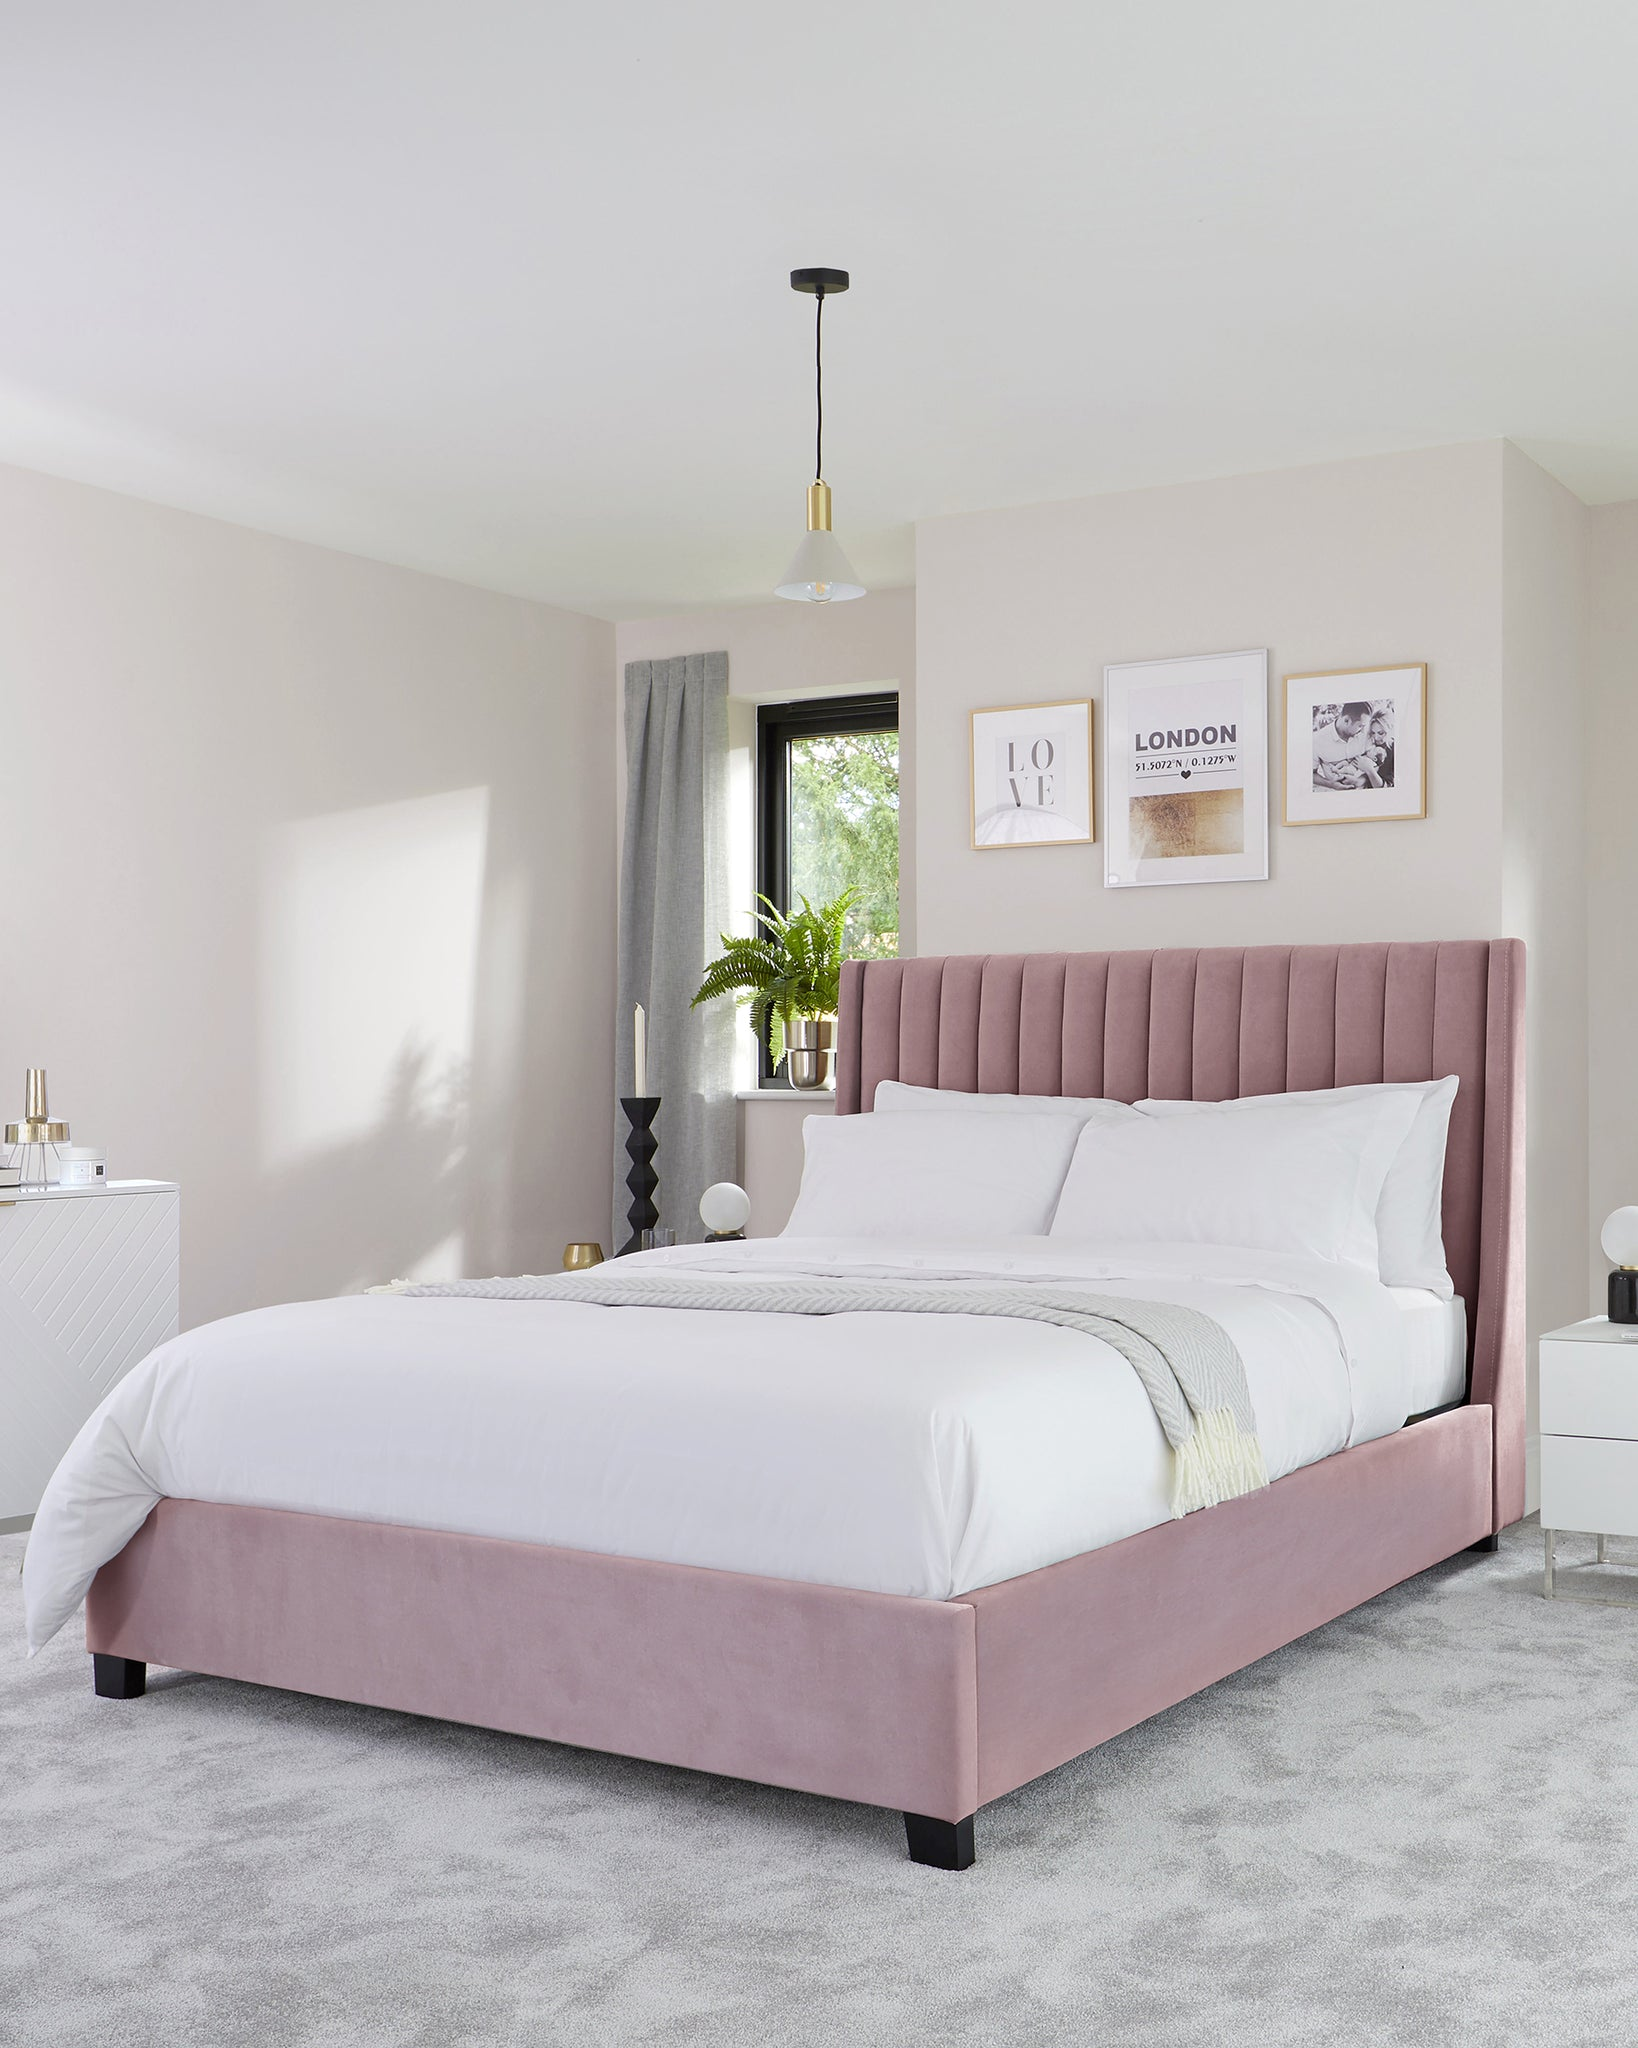 Amalfi Blush Pink Velvet King Size Bed With Storage